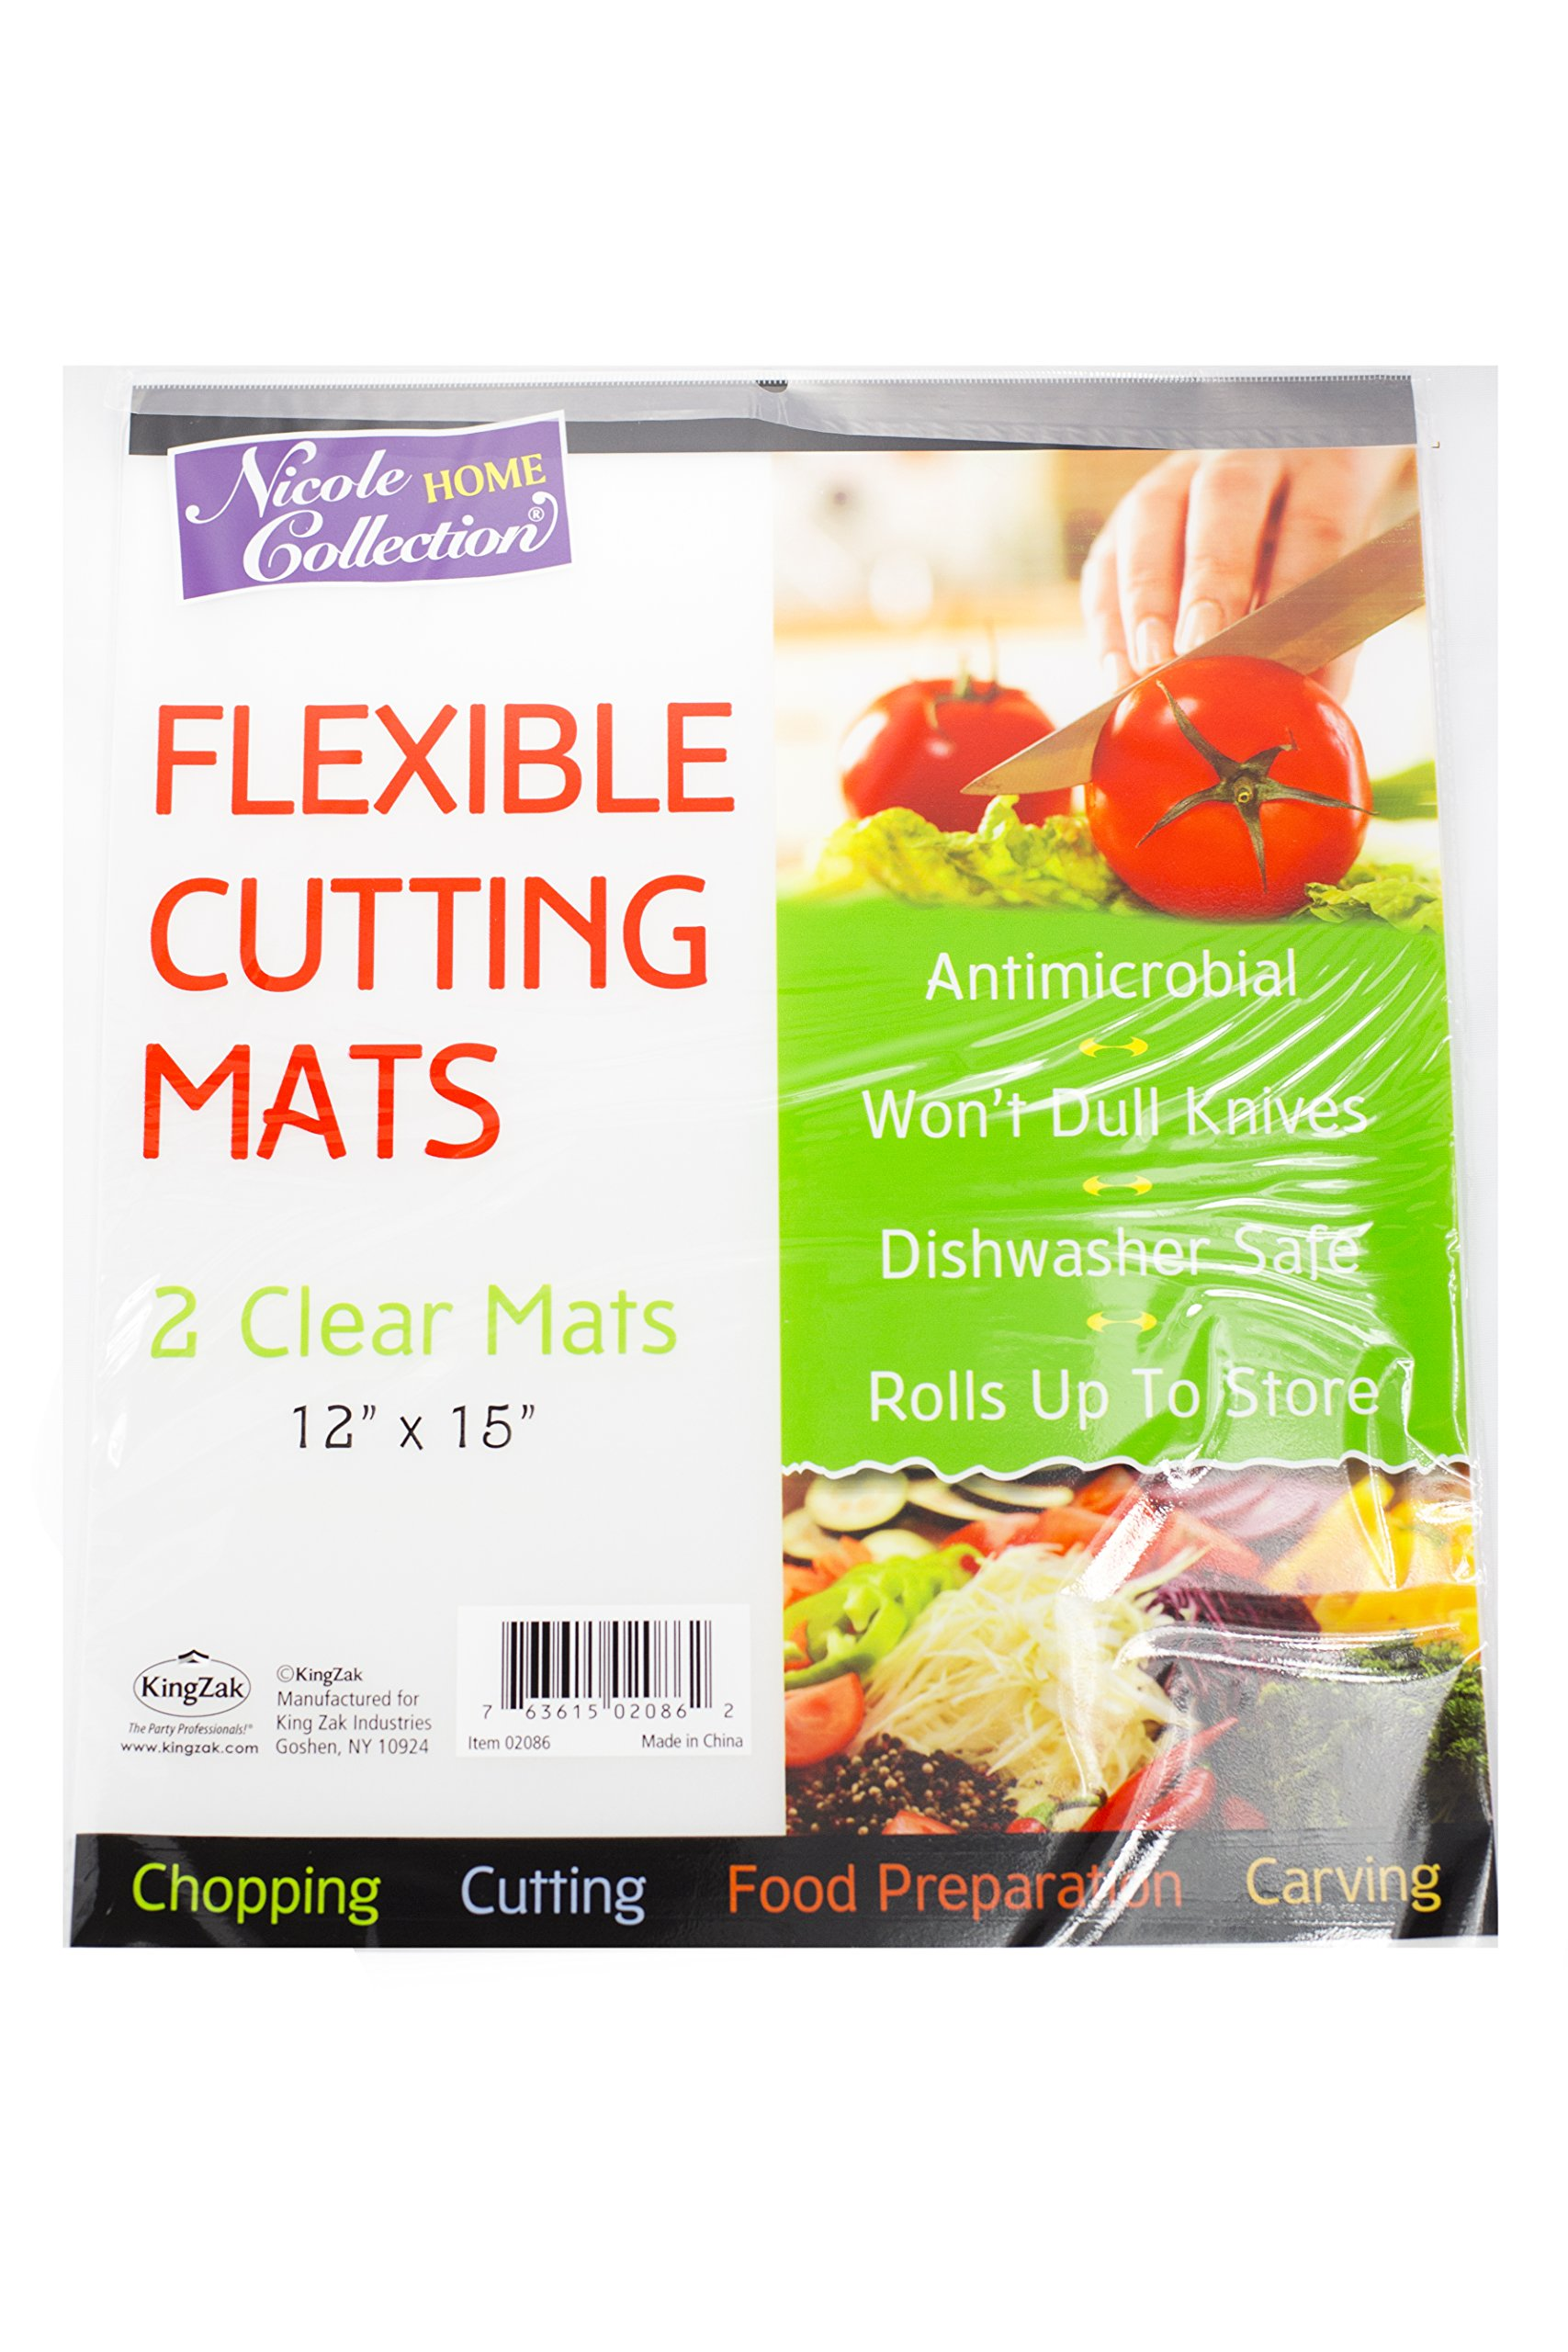 Nicole Home Collection Flexible Cutting Mats 4 Clear Mats 12'' x 15''